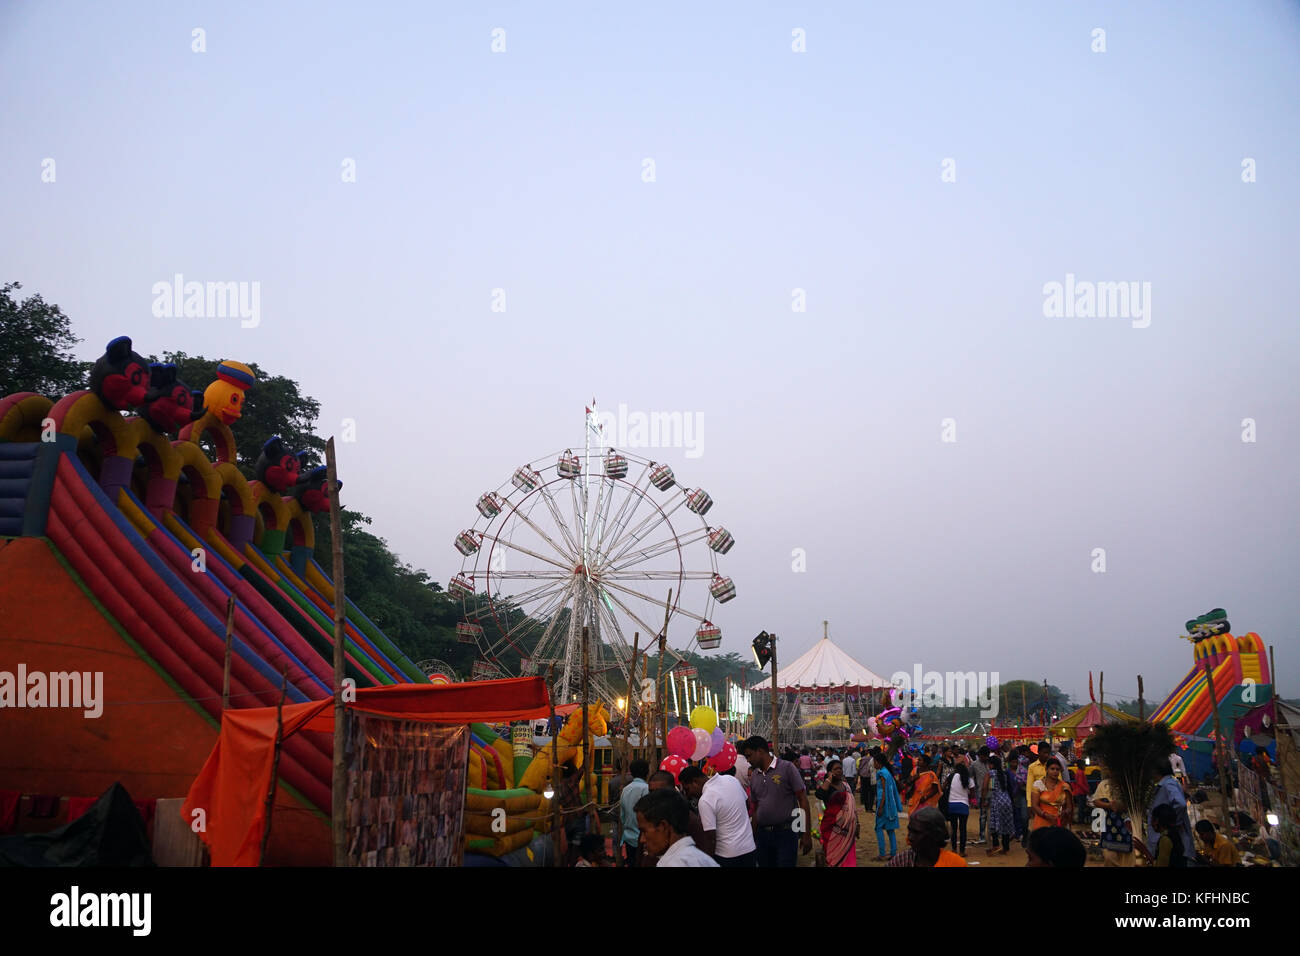 Chaibasa, Jharkhand, India, 29th October 2017: The Ferris wheel, dragon-coaster ride of amusement Park in Gaushala - Stock Image